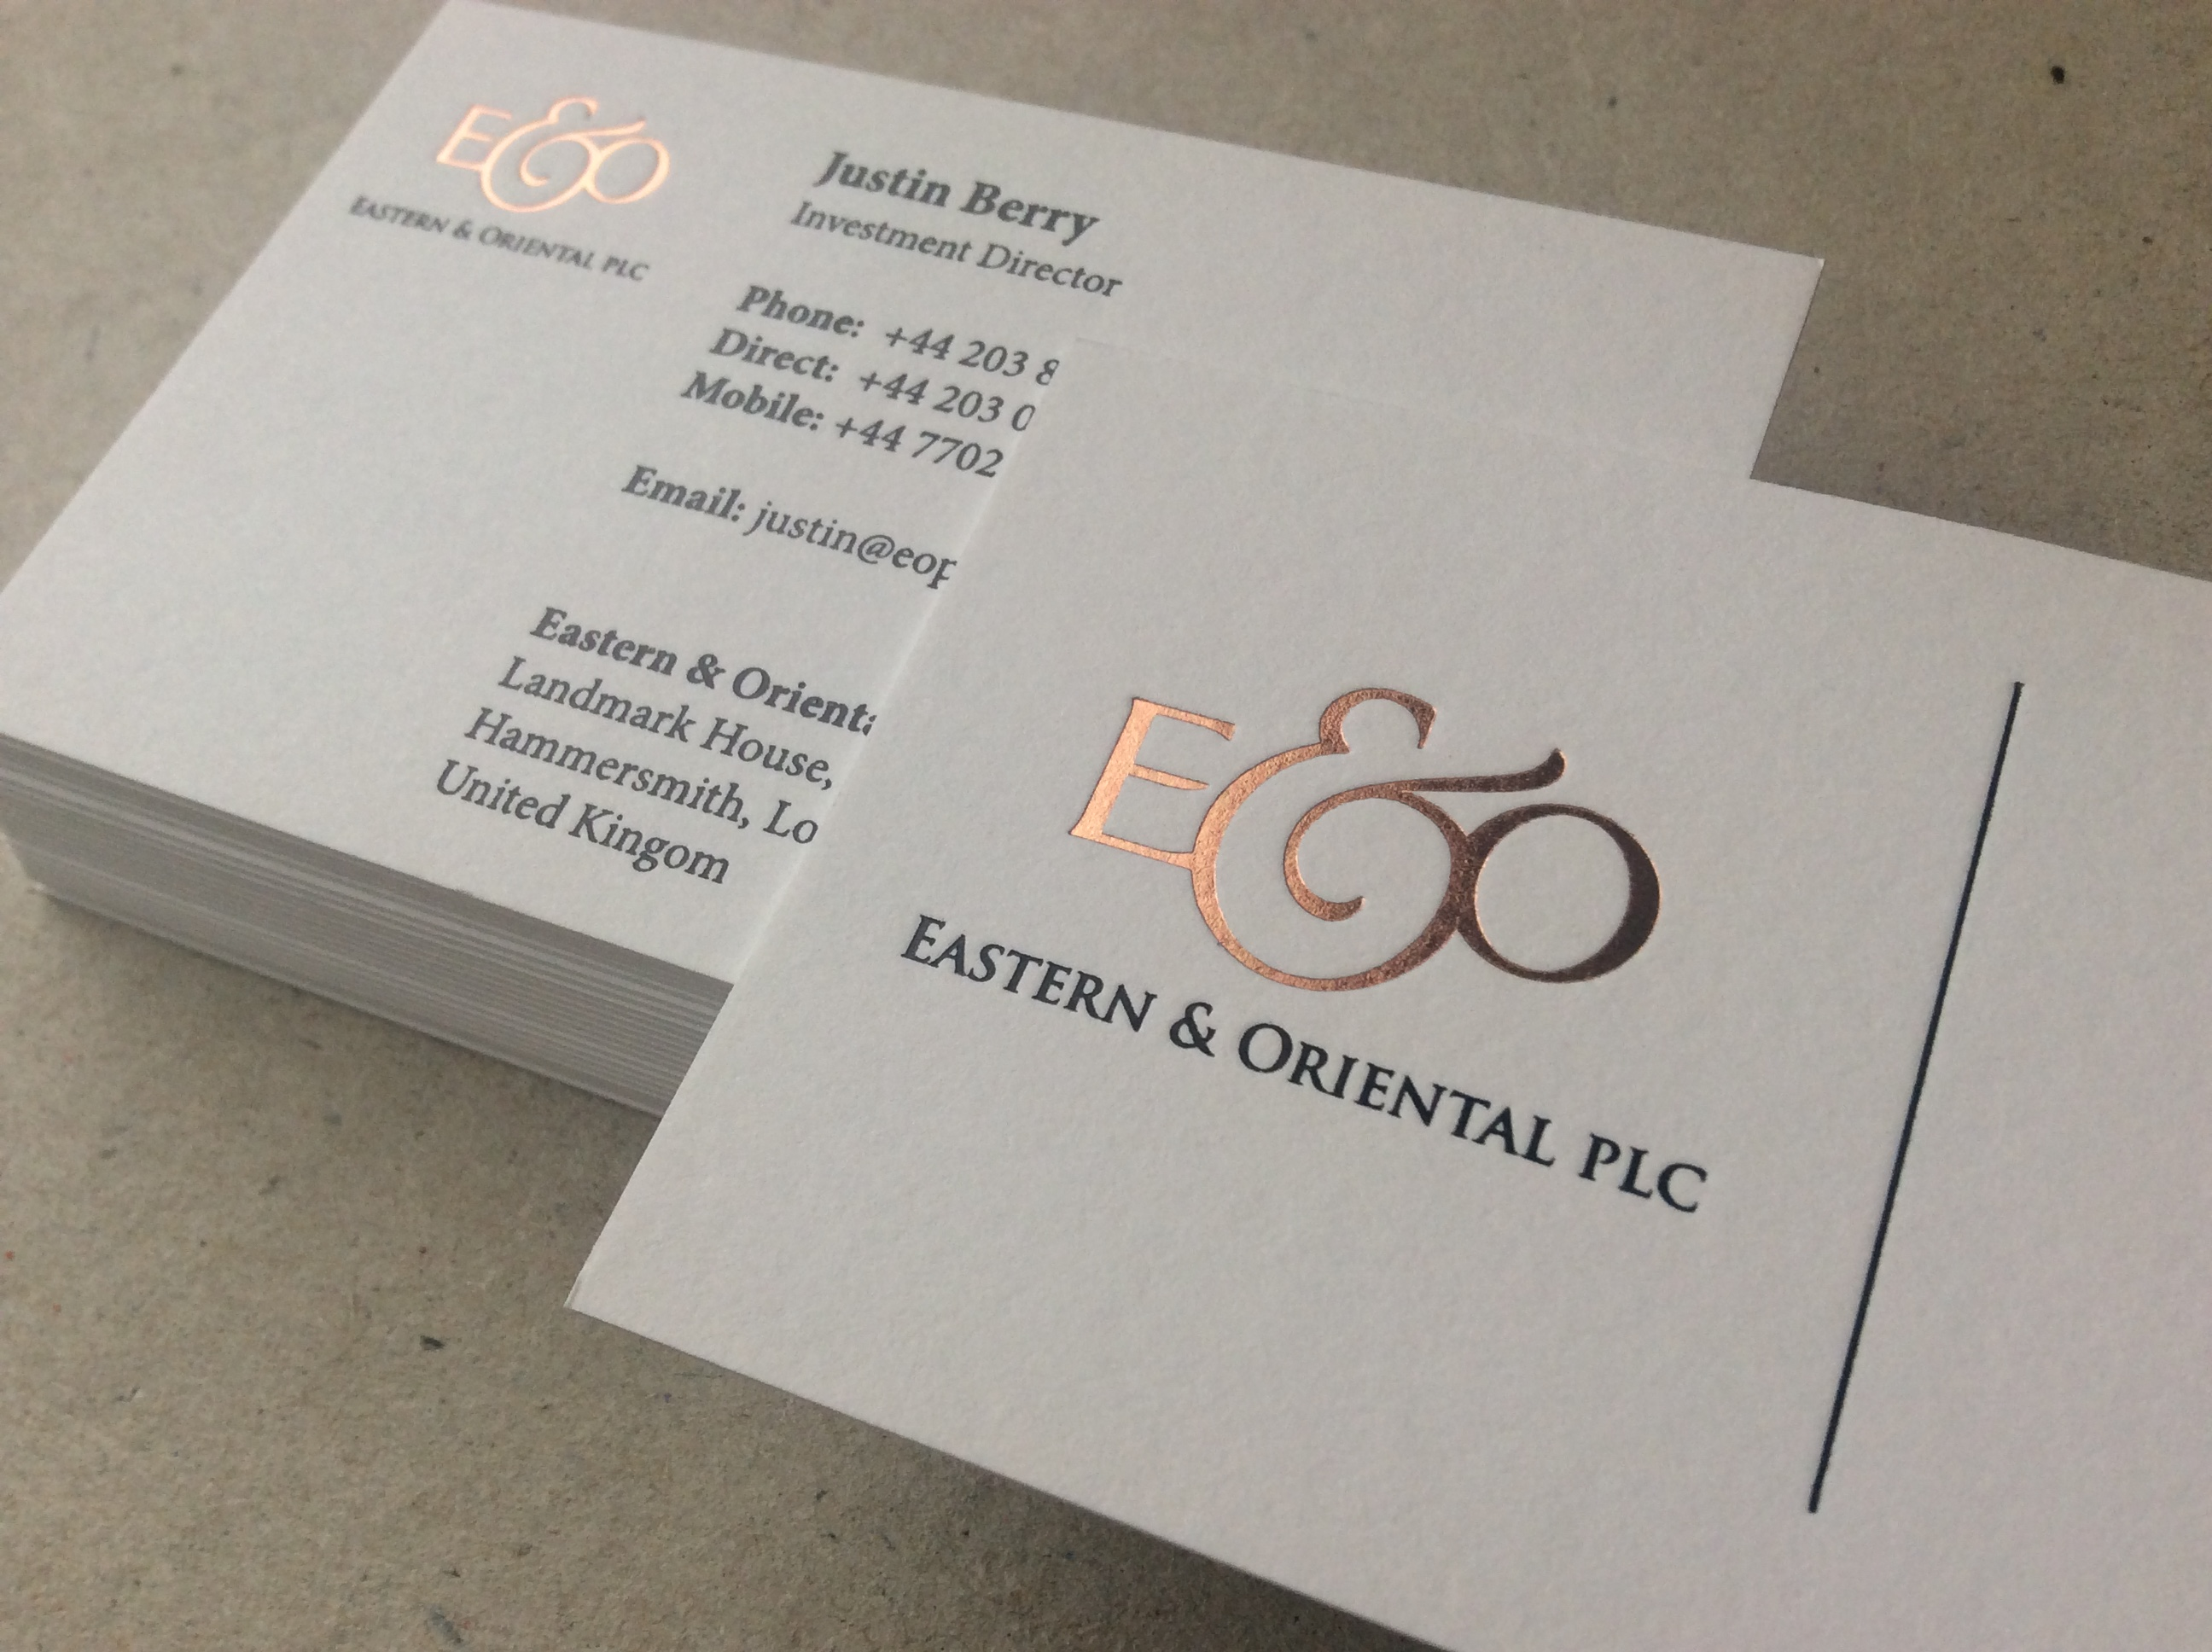 Quality professional business cards ubc rose gold letterpress foil business card reheart Choice Image